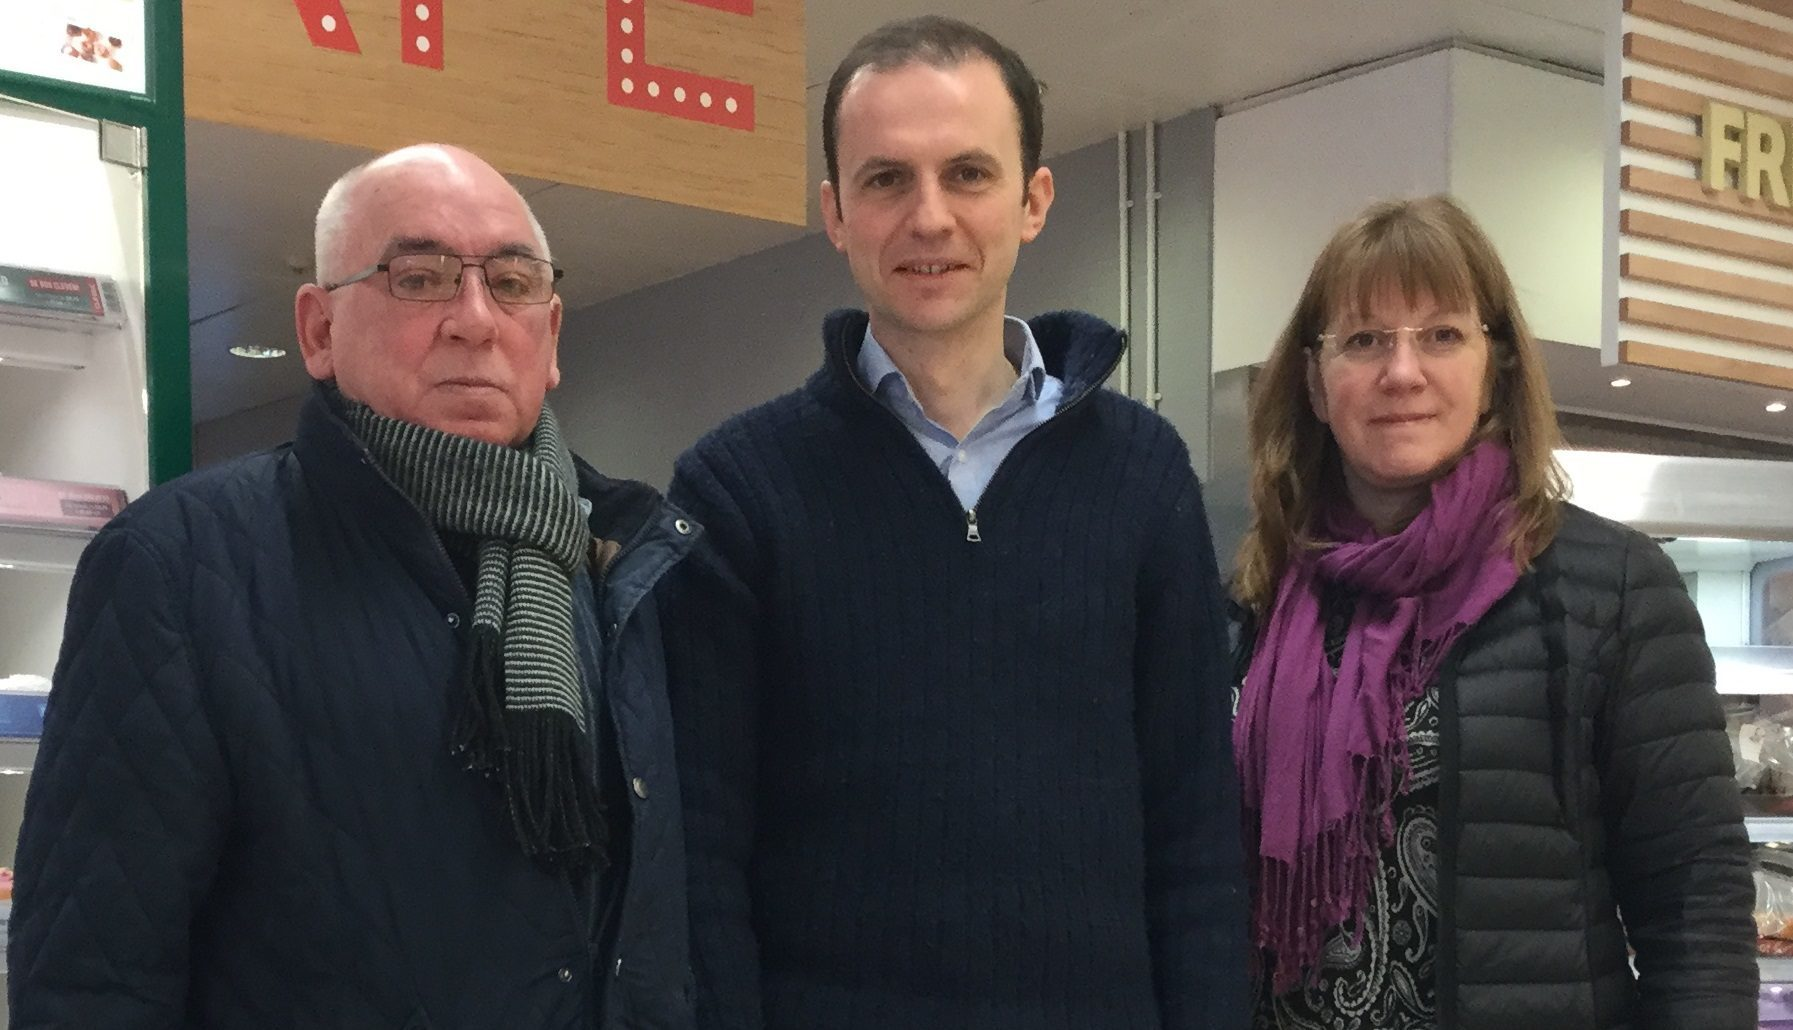 Ken Scott, Stephen Gethins and Councillor Karen Marjoram who is helping Ken with the issues he has raised more locally.